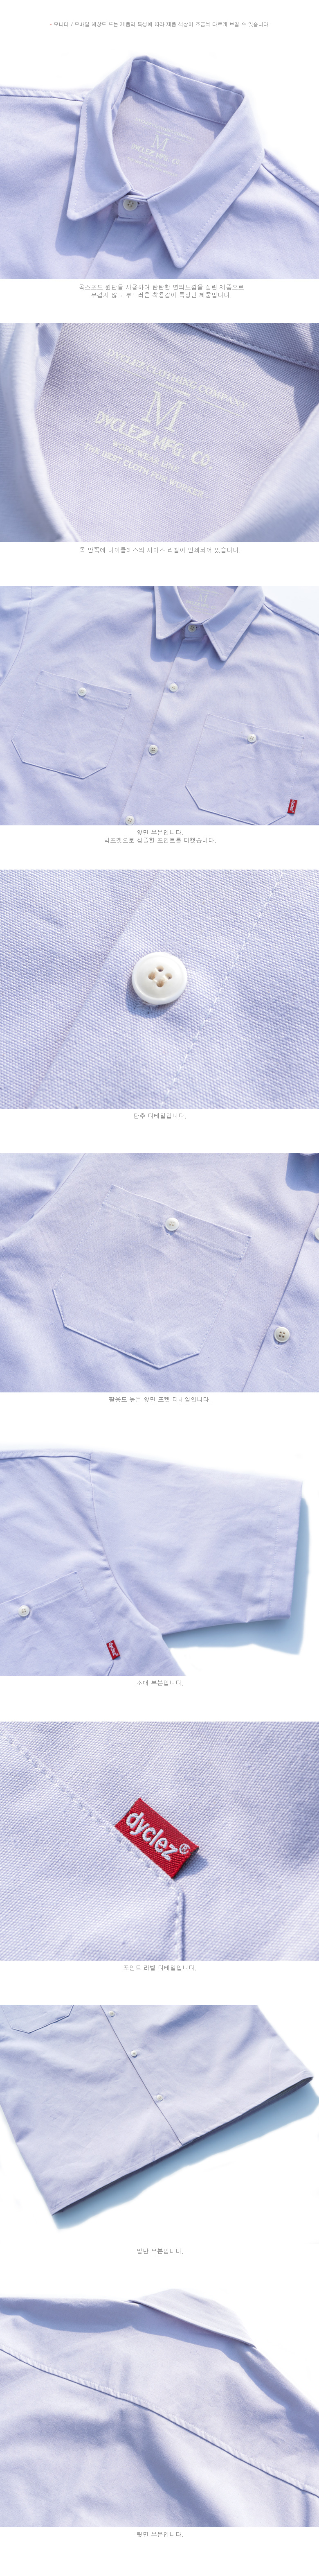 20180412_dy_twopocket_shirt_purple_uk_02.jpg